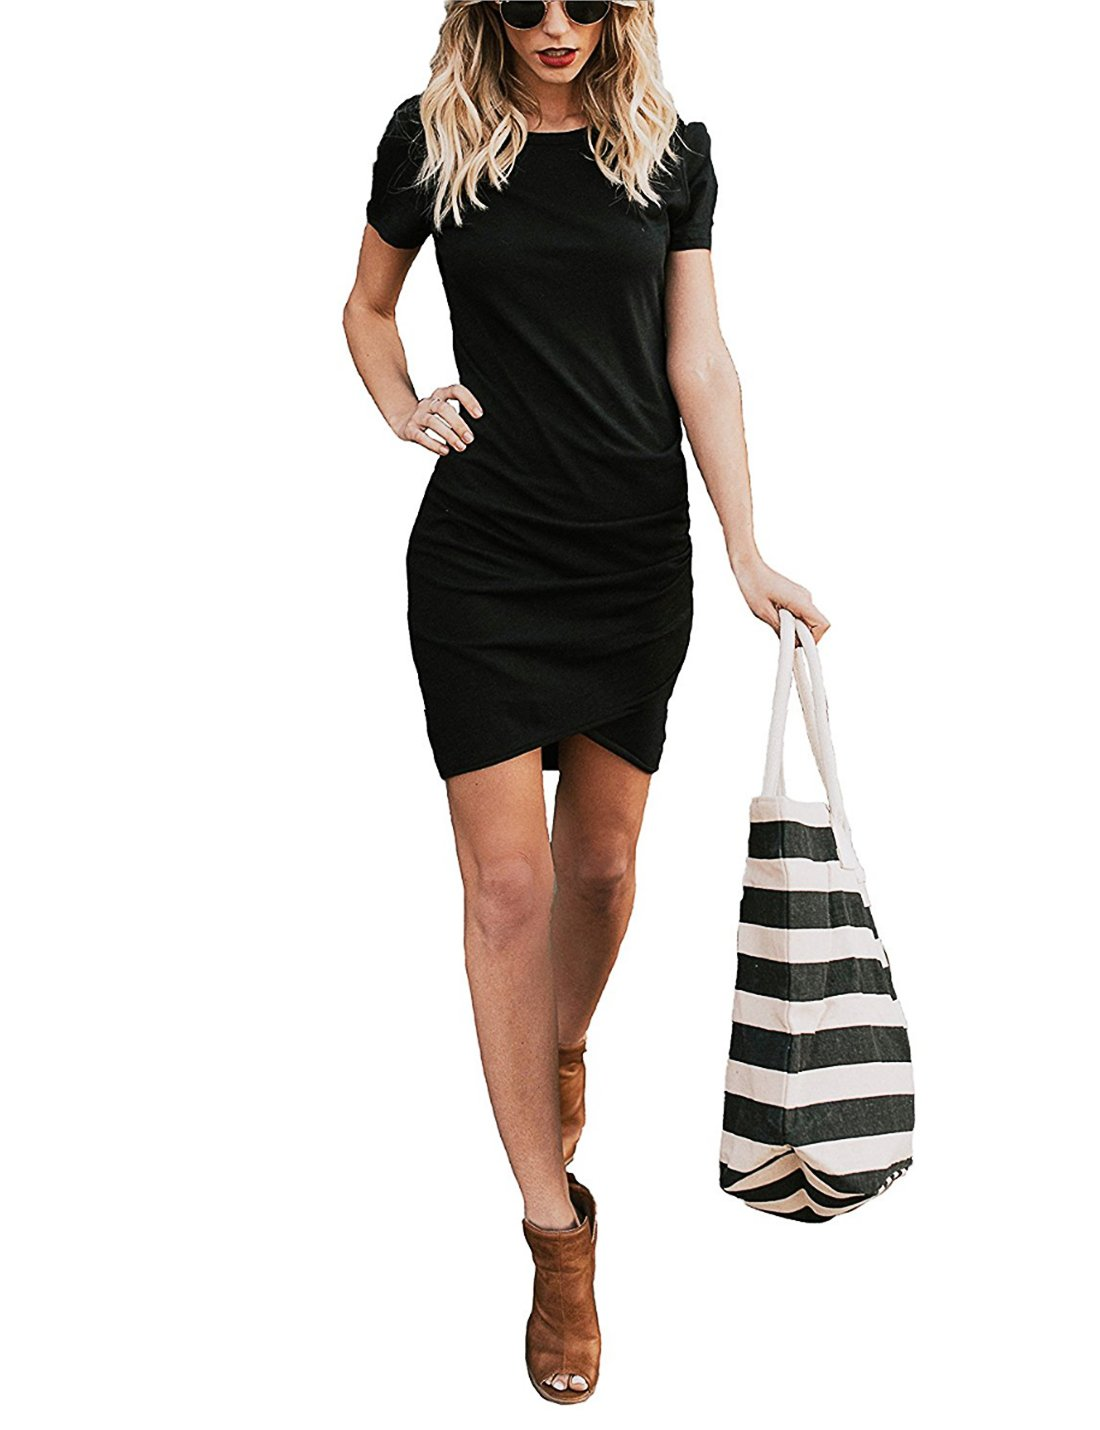 CAIYING Womens Summer Casual Solid Ruched Short Sleeve T-Shirt Midi Dress (Black, M)